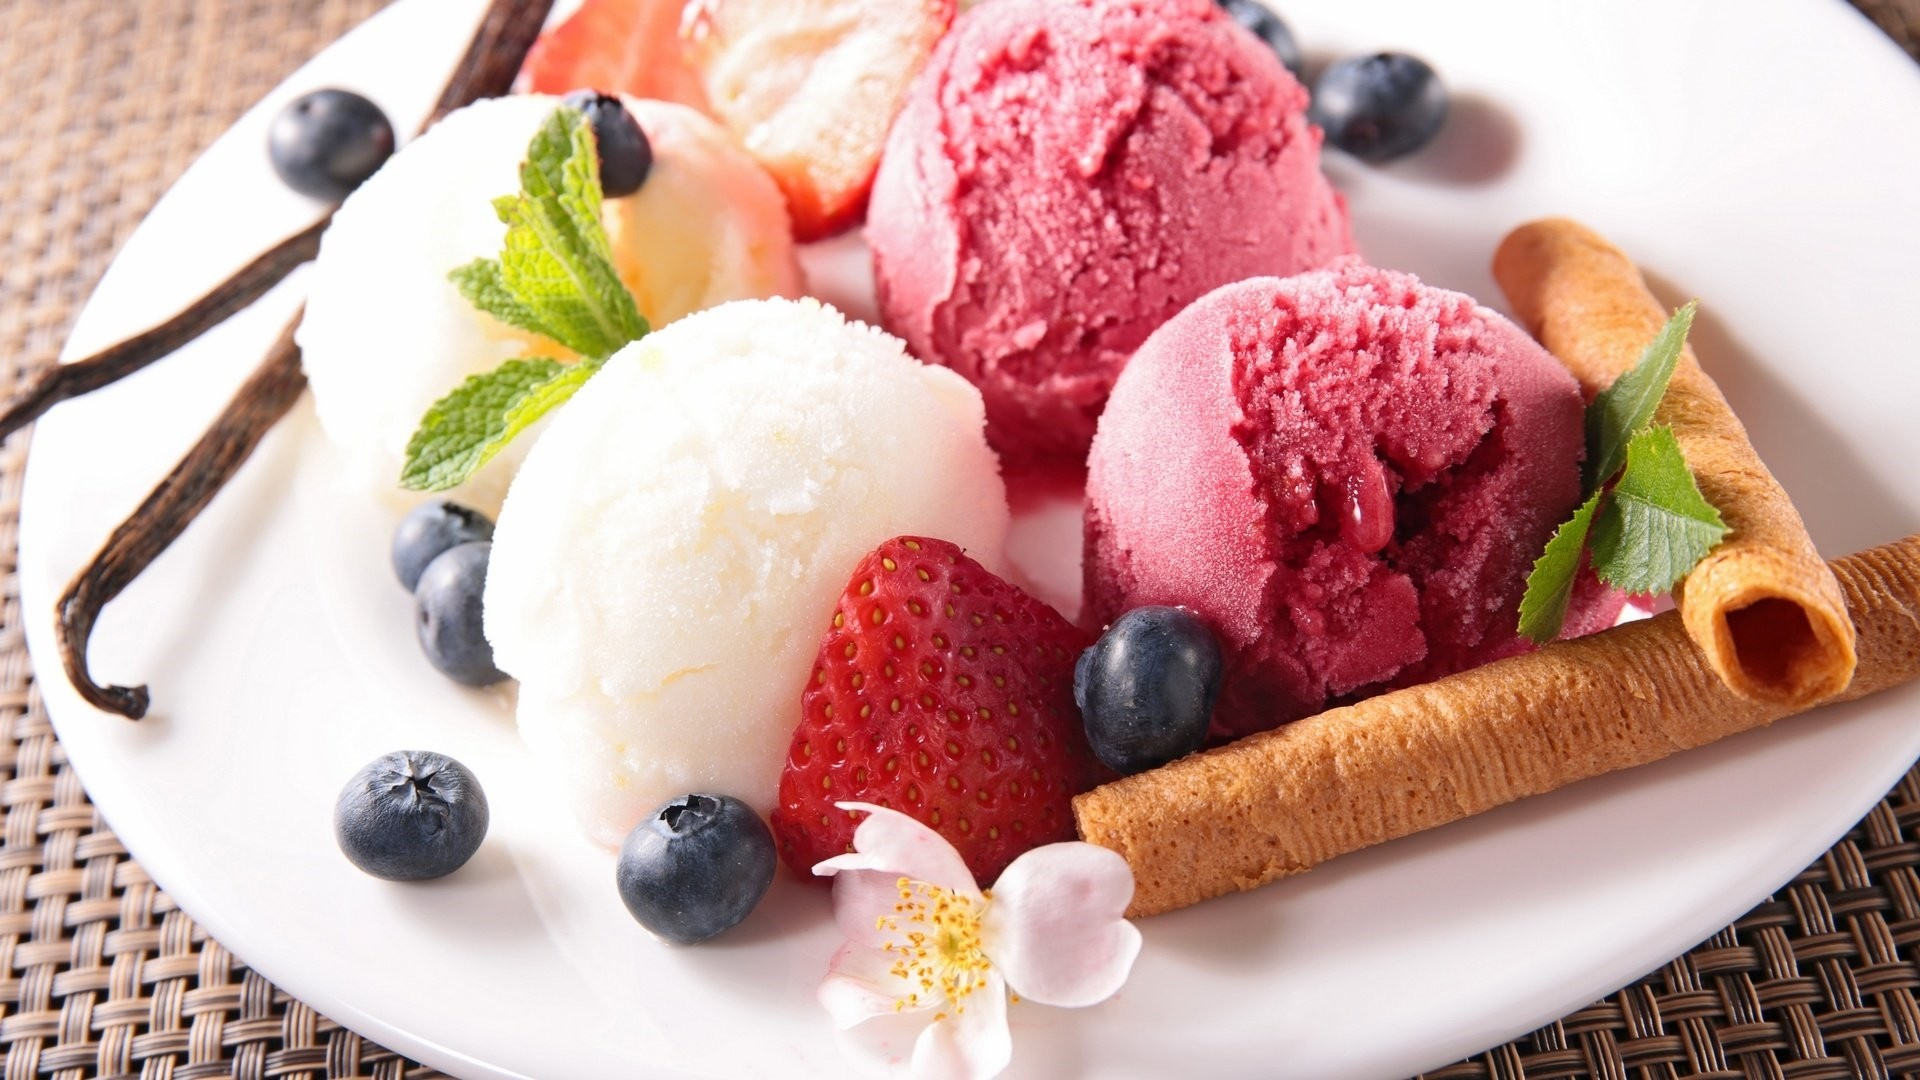 Dessert Ice Cream Wallpaper image hd